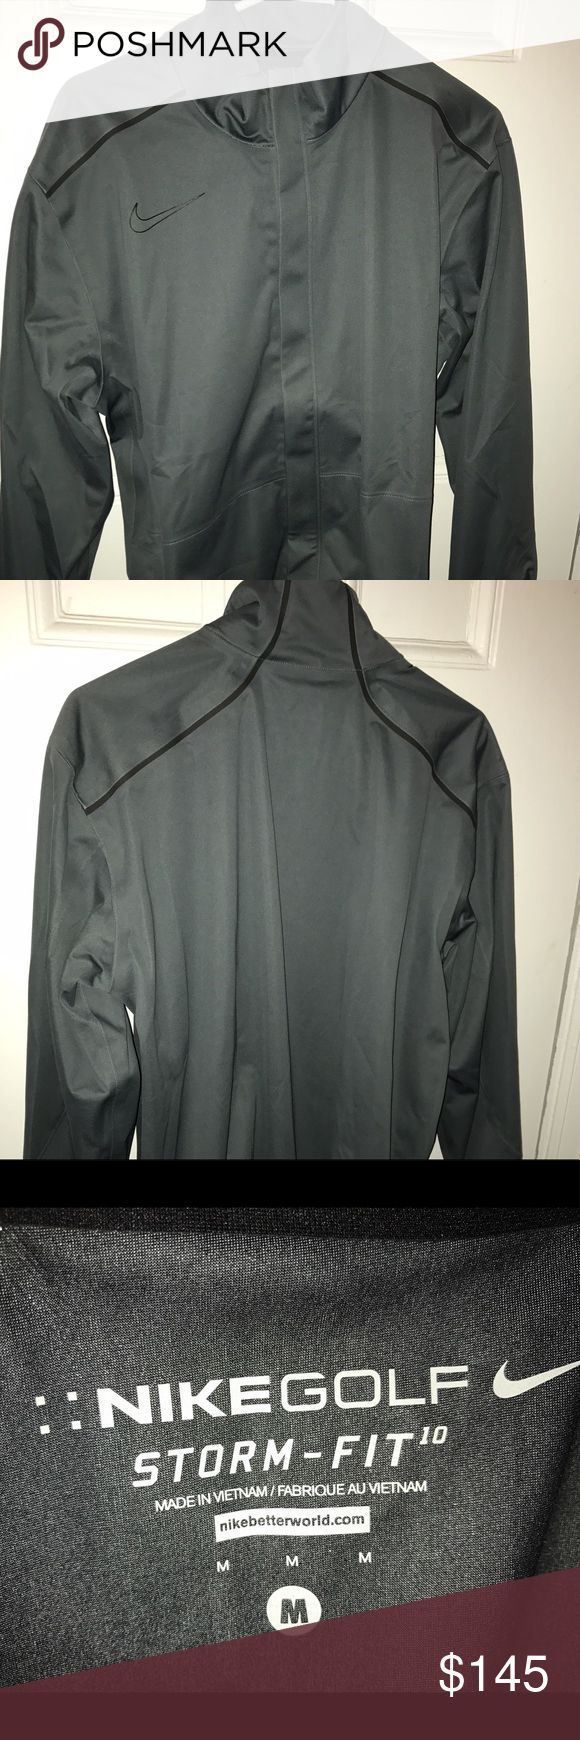 Nike Storm-Fit 10 Nike Golf Jacket I'm selling a turquoise/gray men's Nike storm-fit jacket, size Medium. Great for rain or as an extra layer. Excellent condition, like new. Ready to be shipped and worn immediately! Nike Jackets & Coats Performance Jackets